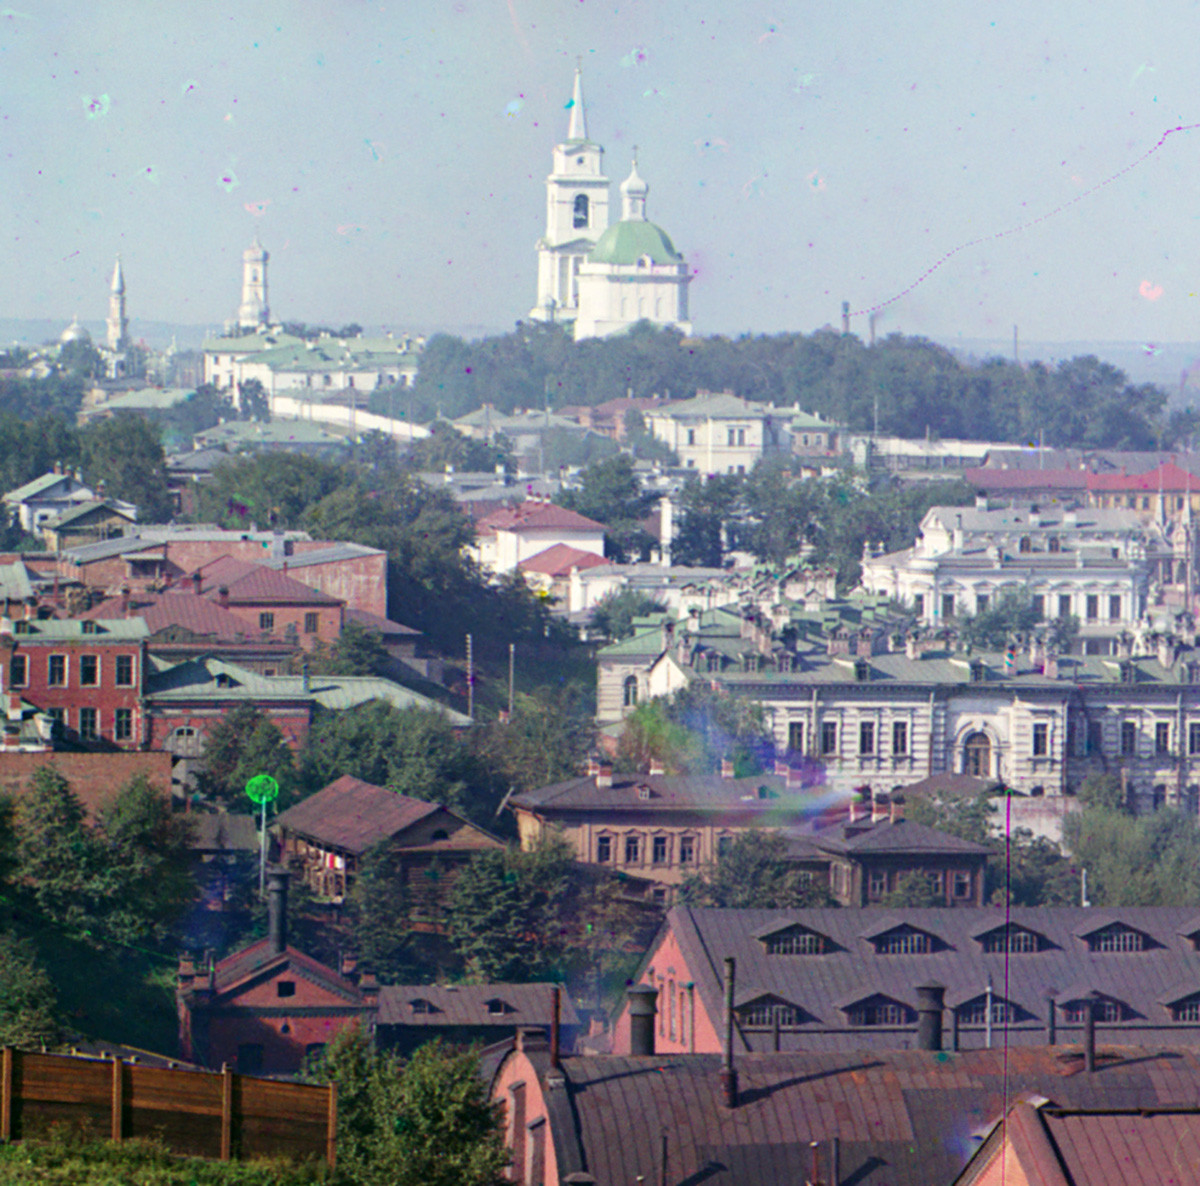 View of central Perm from City Hills. In distant background from left: minaret of Main Mosque, bell tower of Trinity Cathedral. Center: Transfiguration Cathedral. Center far right: side & back of Meshkov House. All buildings linked by Monastery Street. Summer 1909.